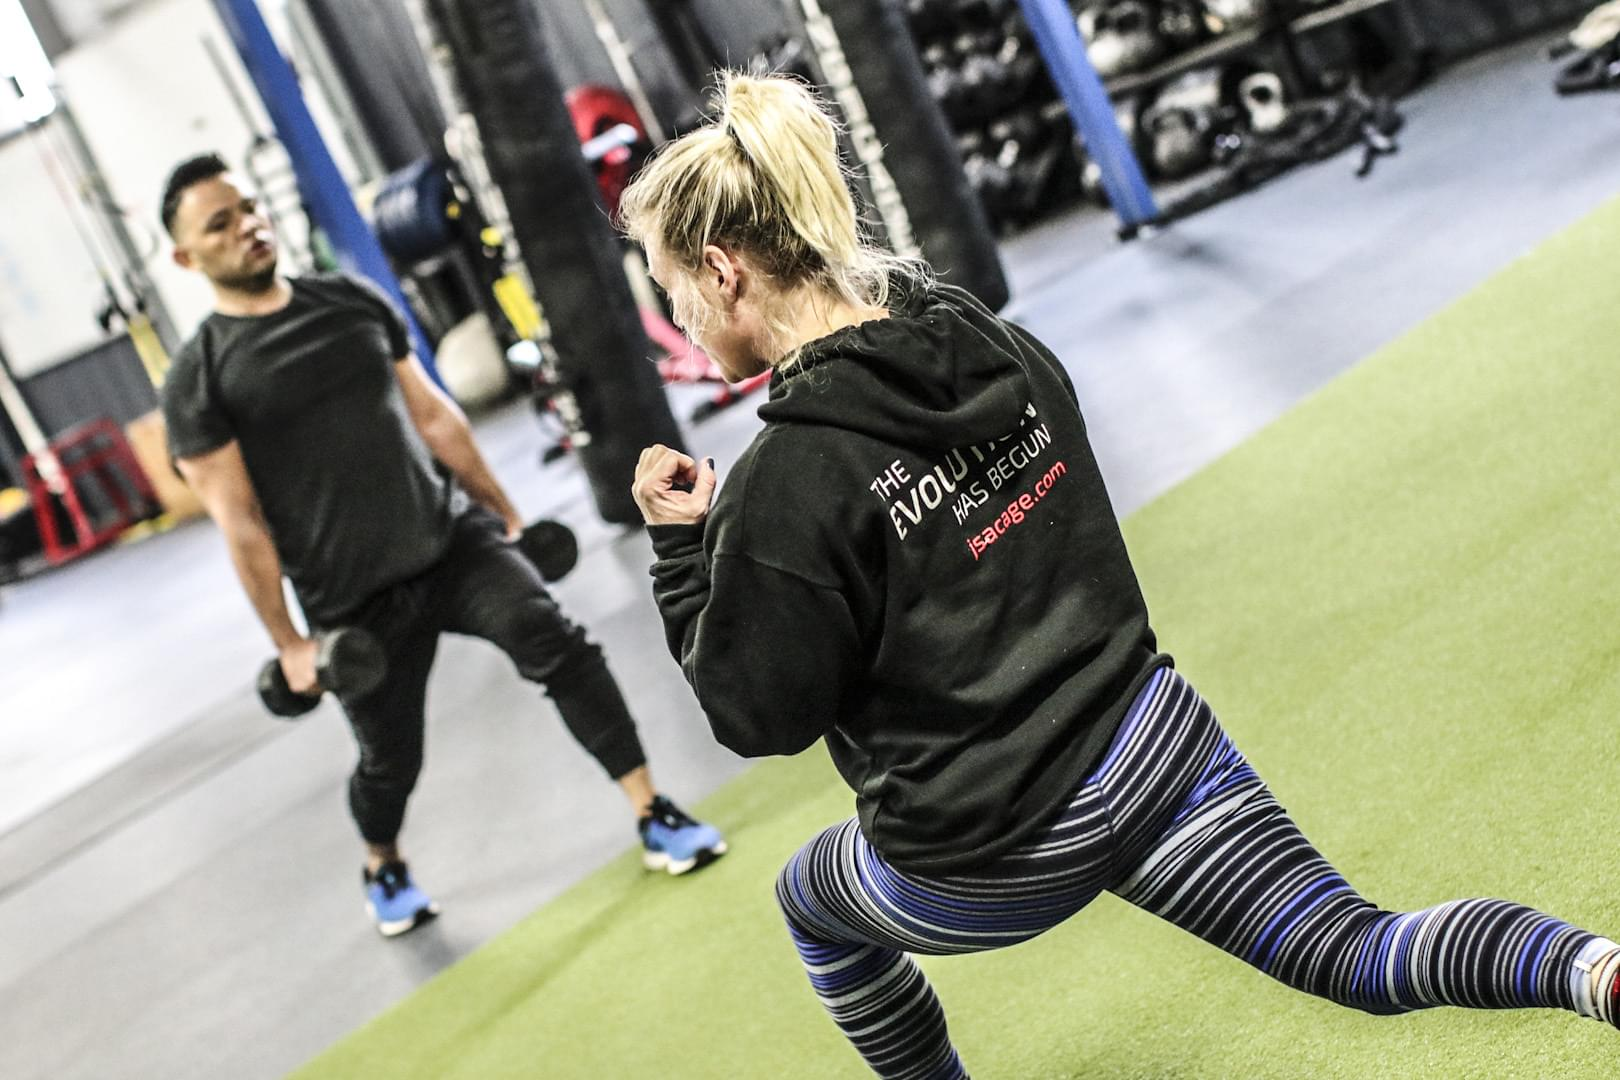 Cage JSA: Martial Arts & Fitness Classes in Cromwell CT